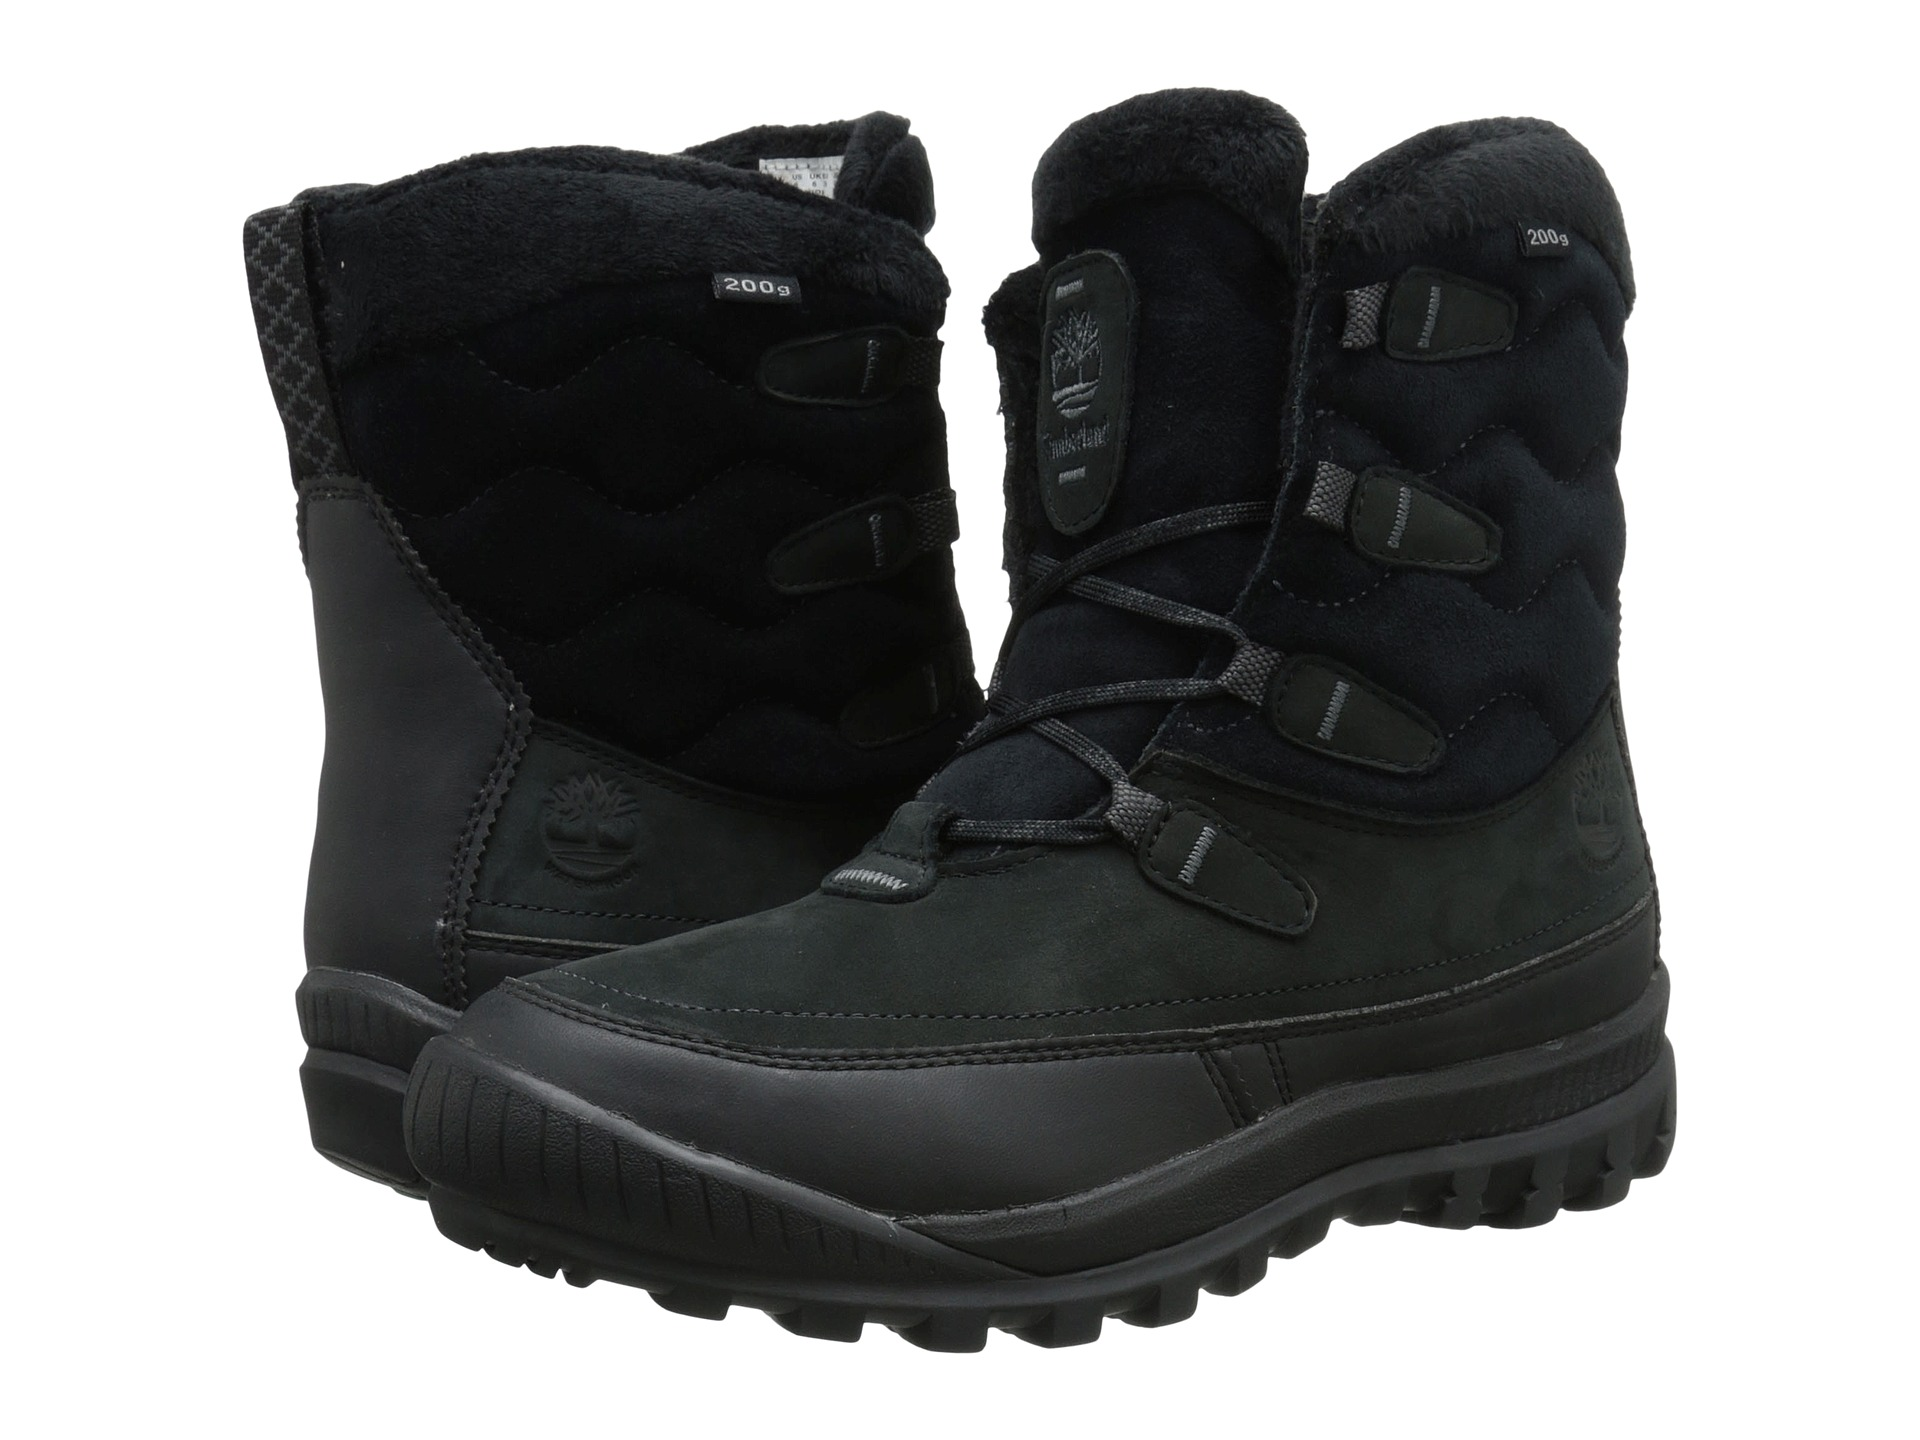 timberland woodhaven mid waterproof insulated zappos